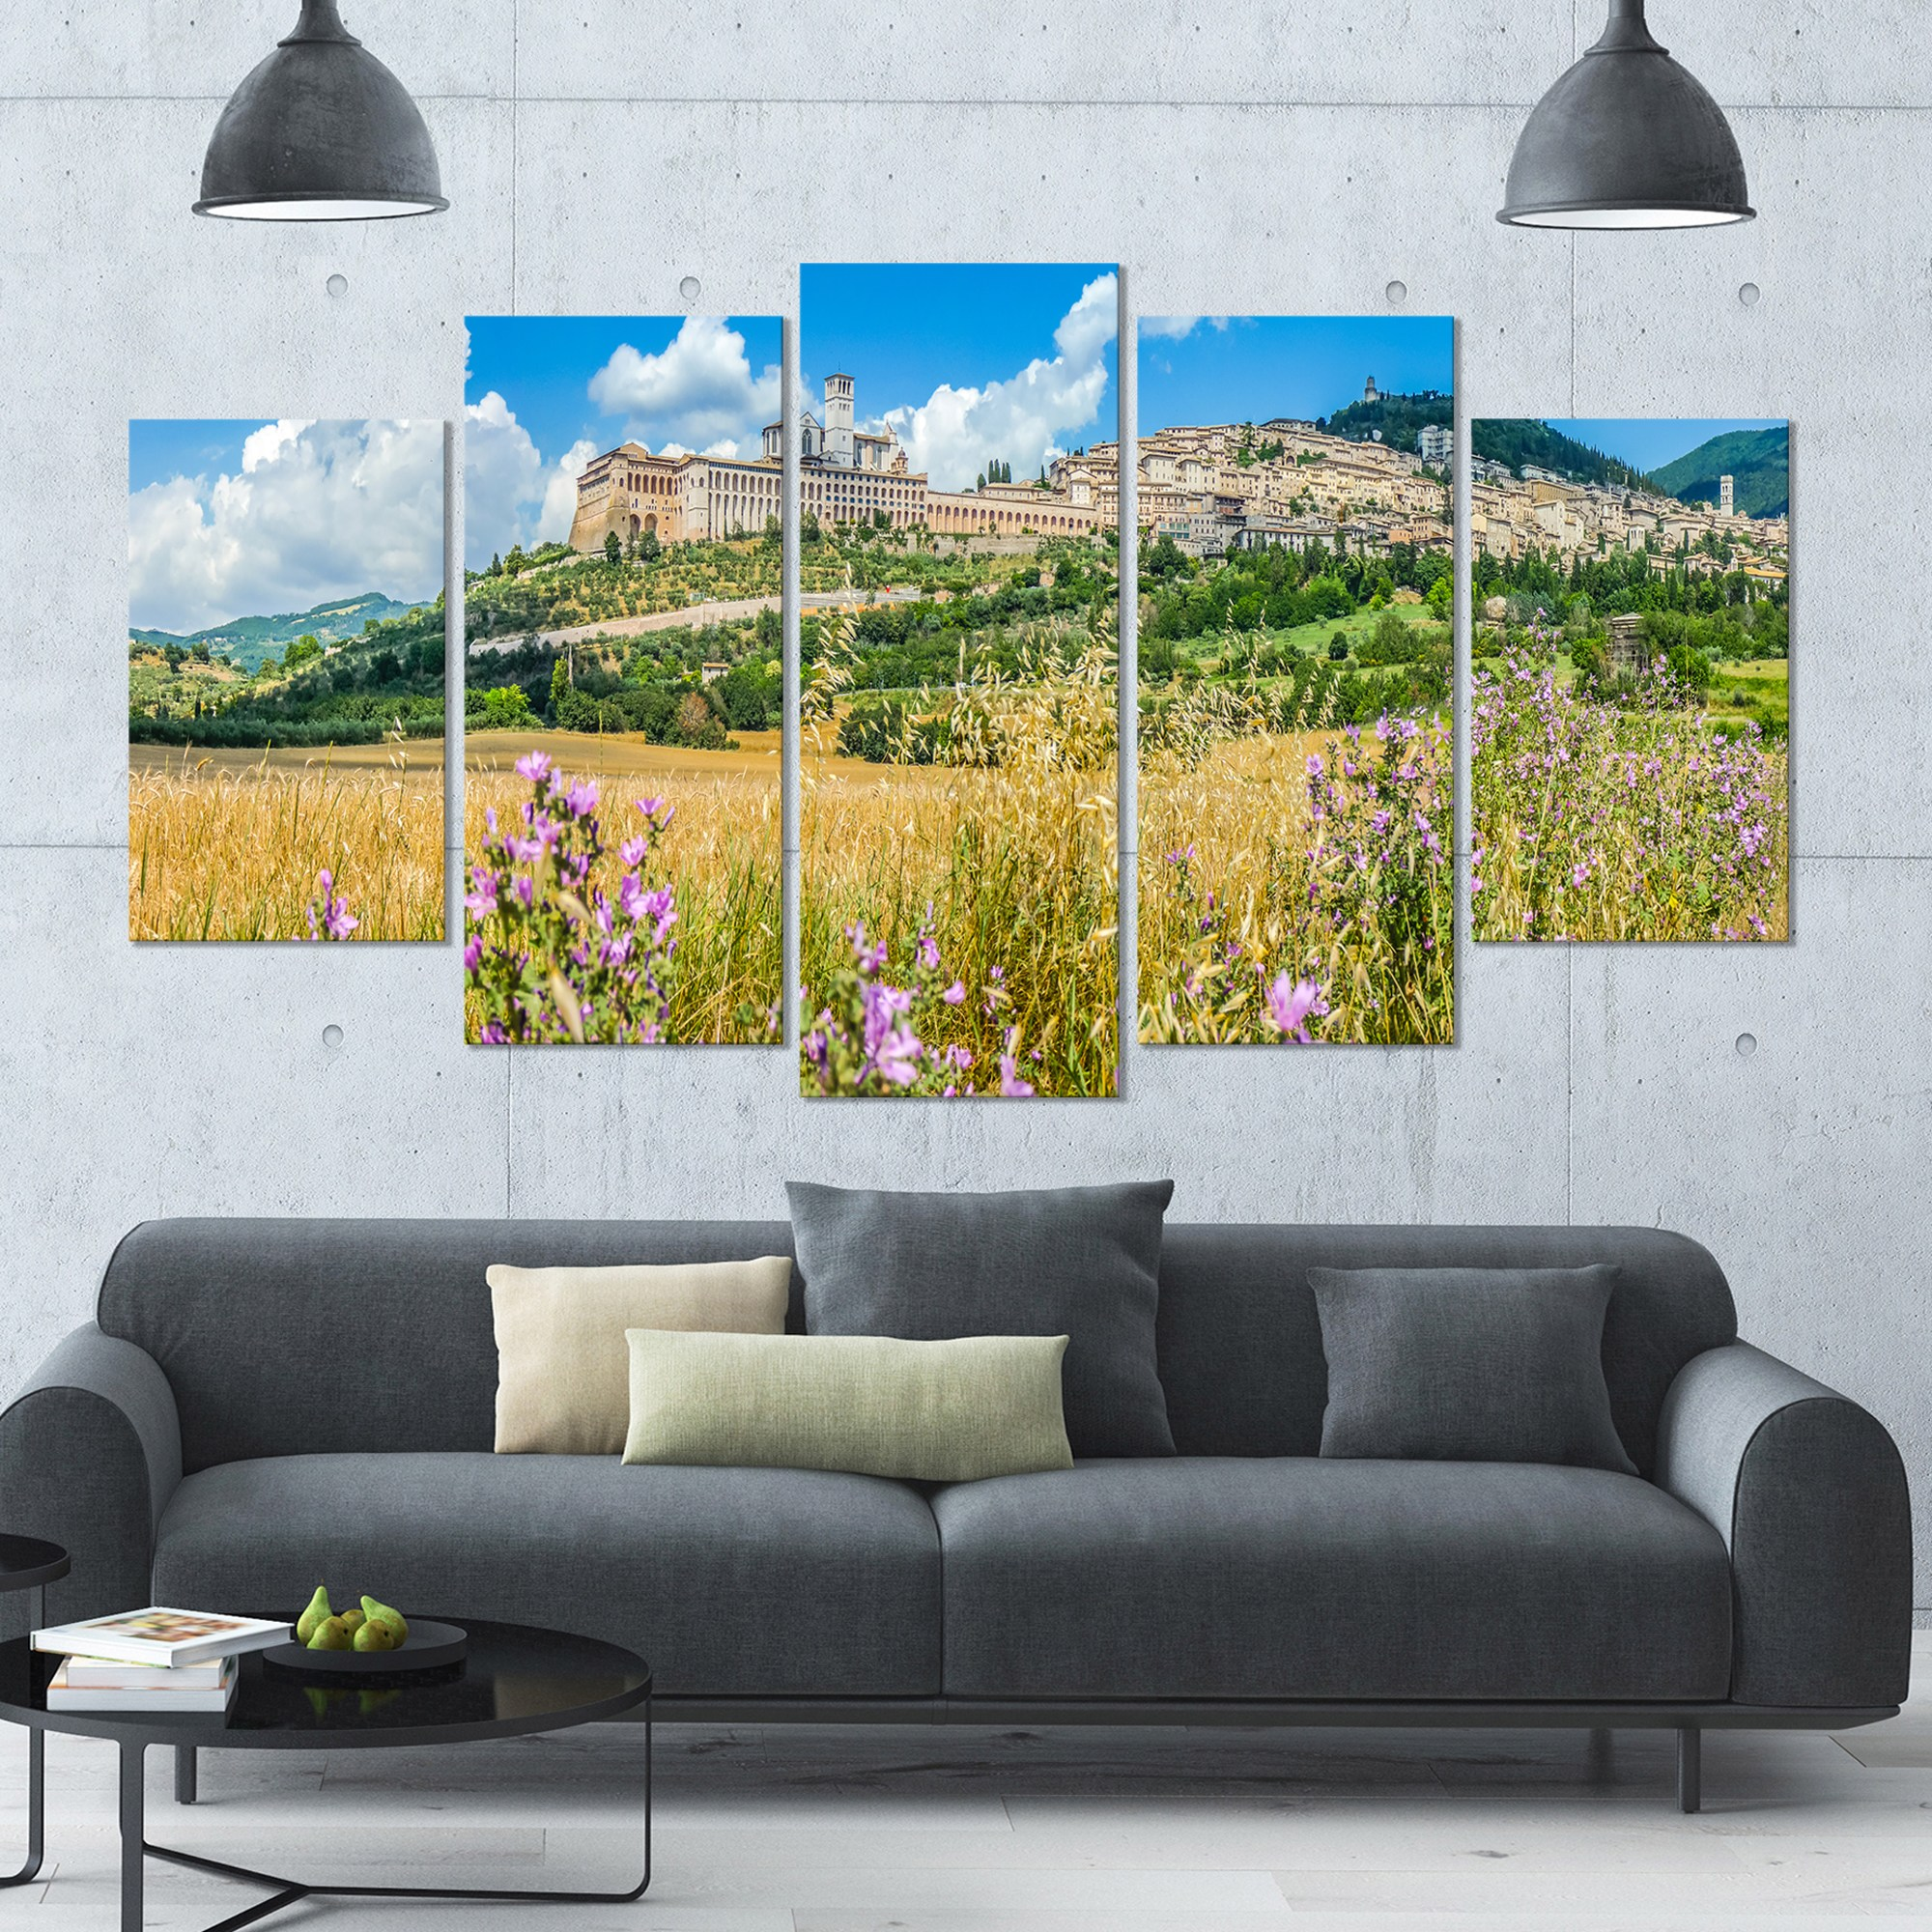 DESIGN ART Designart 'Ancient Town of Assisi Panorama' Landscape Wall Artwork on Canvas - 60x32 5 Panels - Multi-color